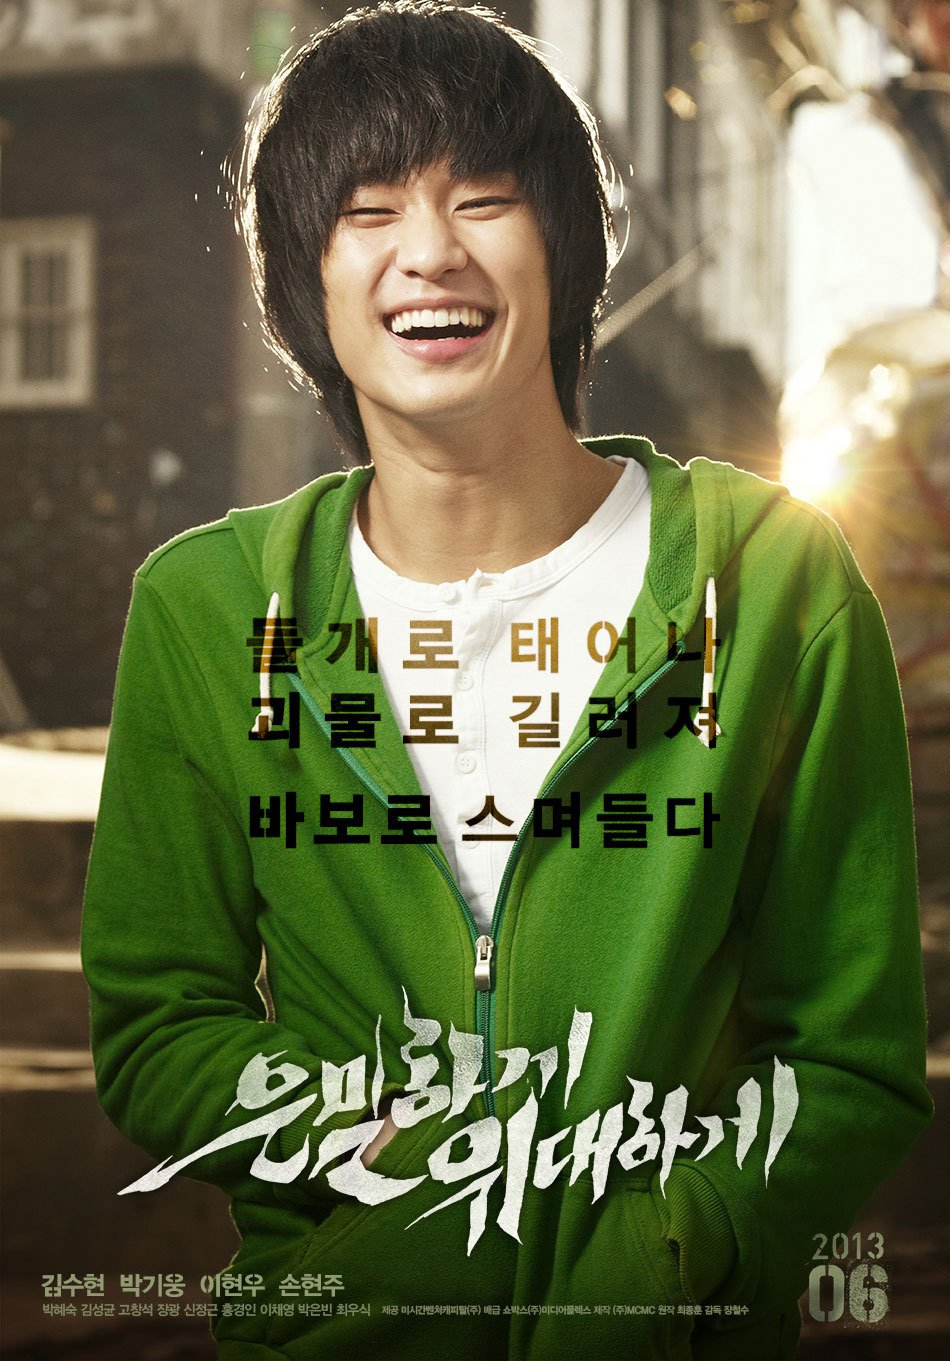 Sinopsis Film Korea Secretly Greatly atau Covertly Grandly Pemain Kim Soo Hyun, Park Ki Woong & Lee Hyun Woo